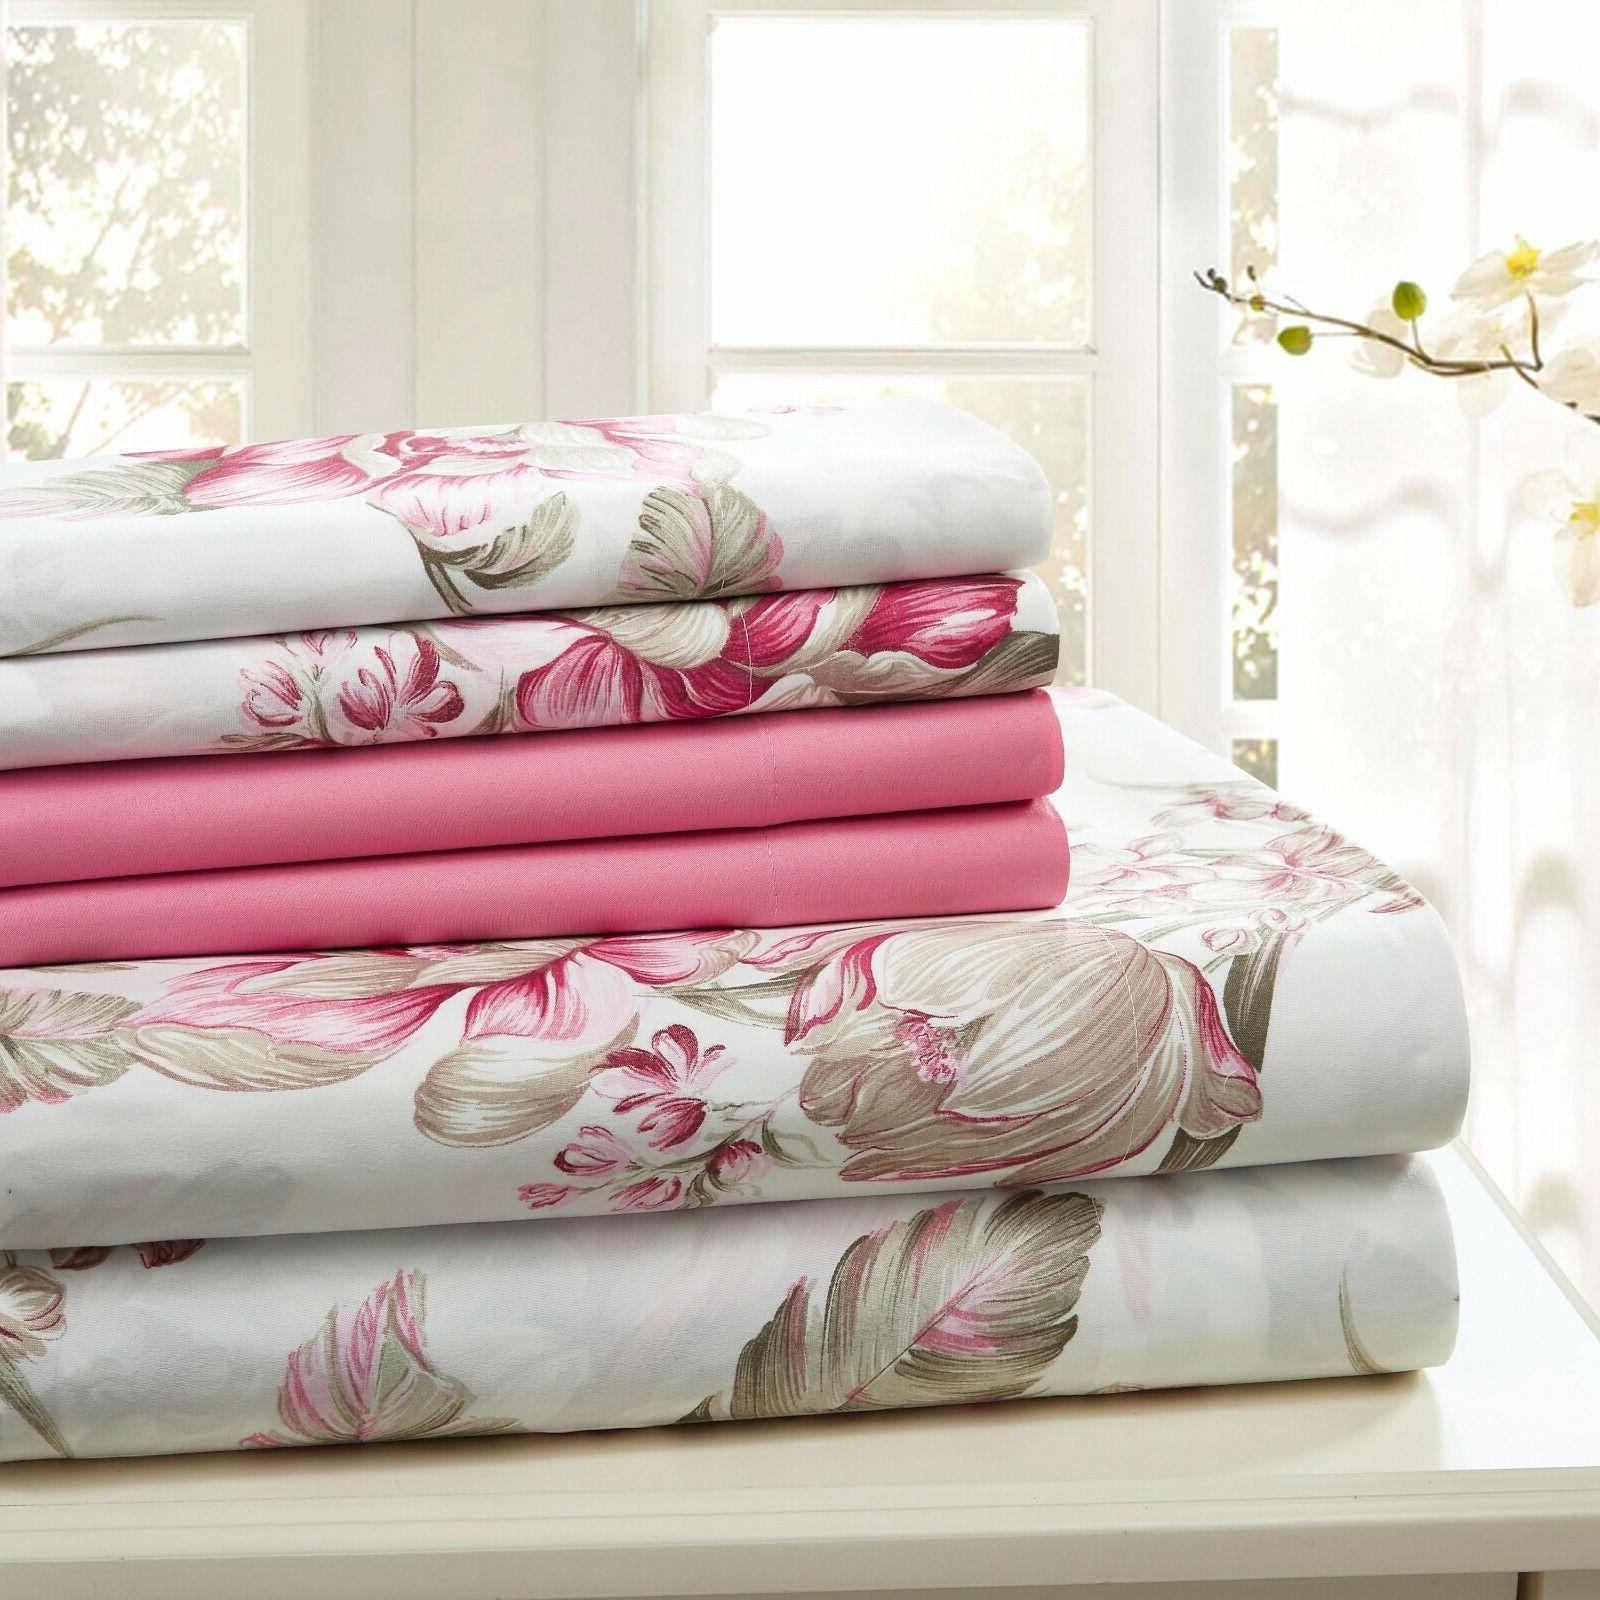 SHEET SET QUEEN KING PRINT 6 PIECE COTTON PERCALE FREE WASH